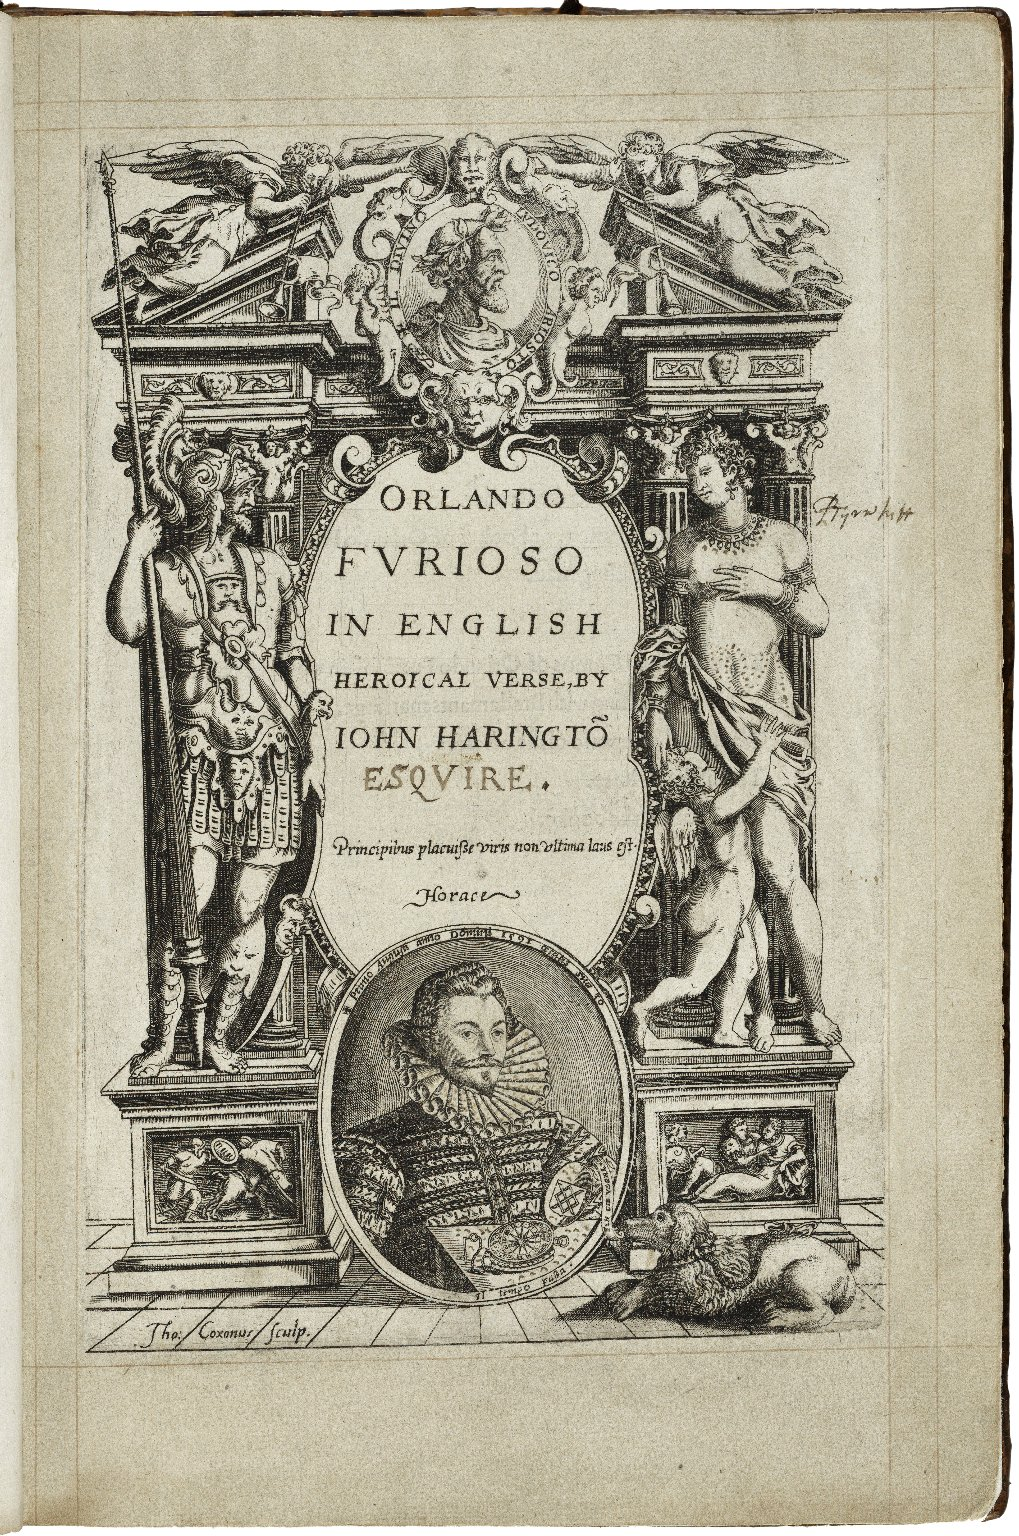 [Orlando furioso. English] Orlando furioso in English heroical verse, by Iohn Haringto[n]